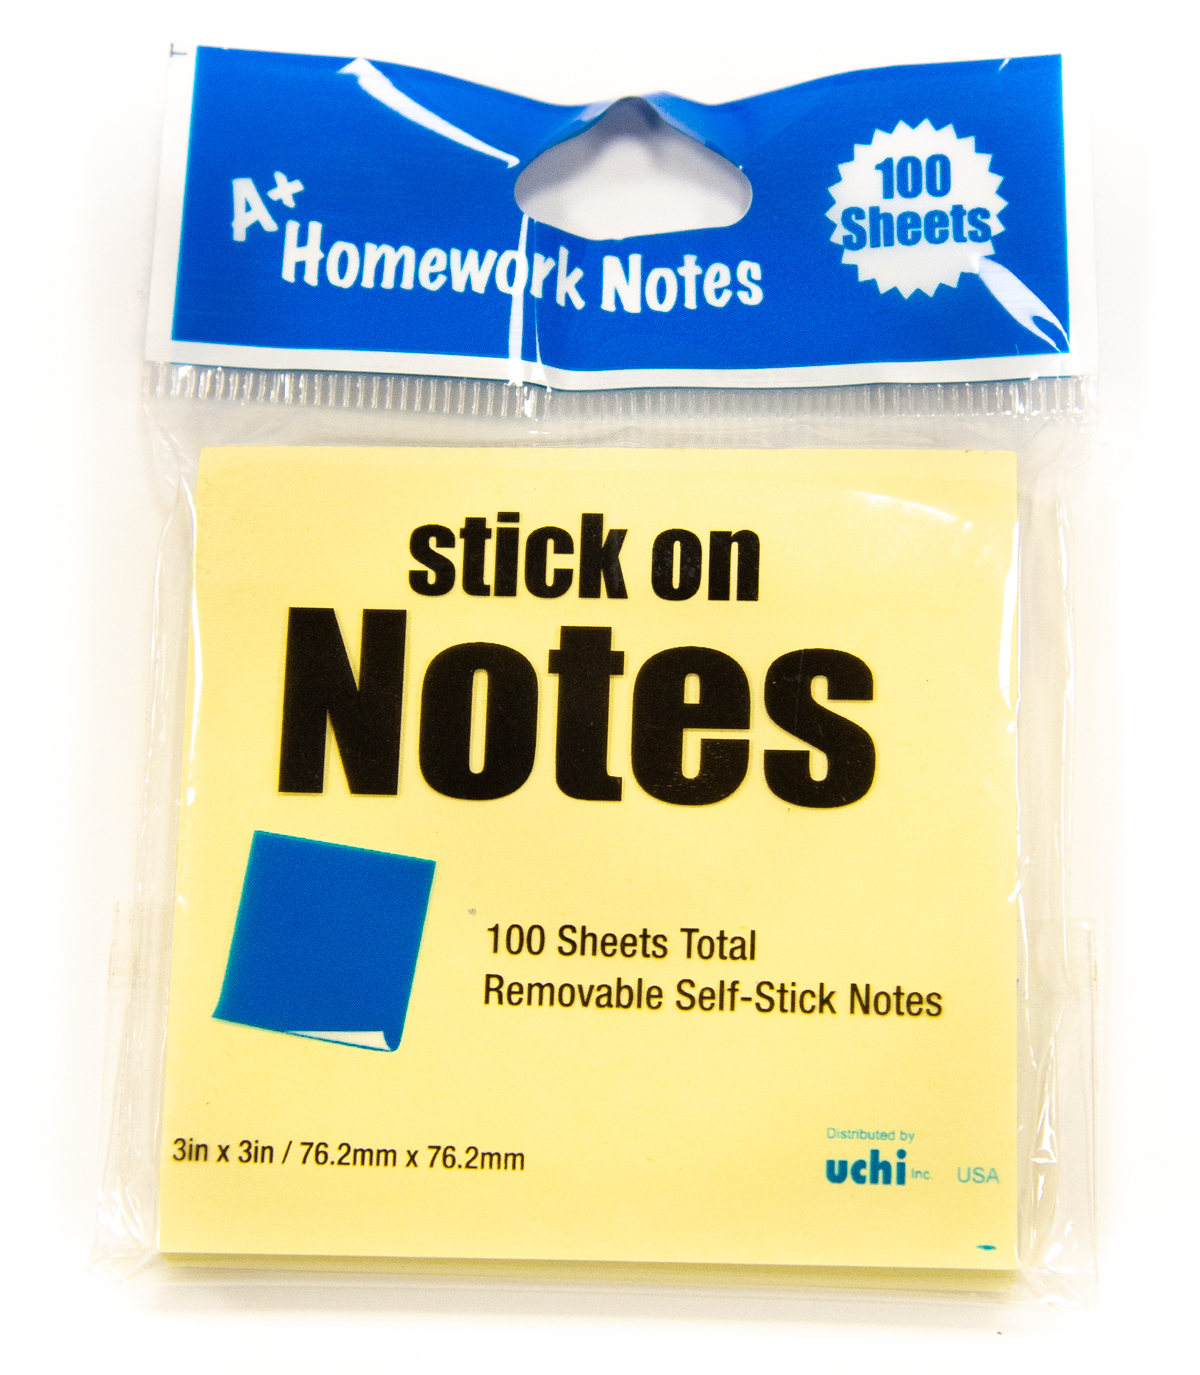 ''A+ Homework Stick On NOTES - 100 sheets - 3'''' x 3'''' [428253]''